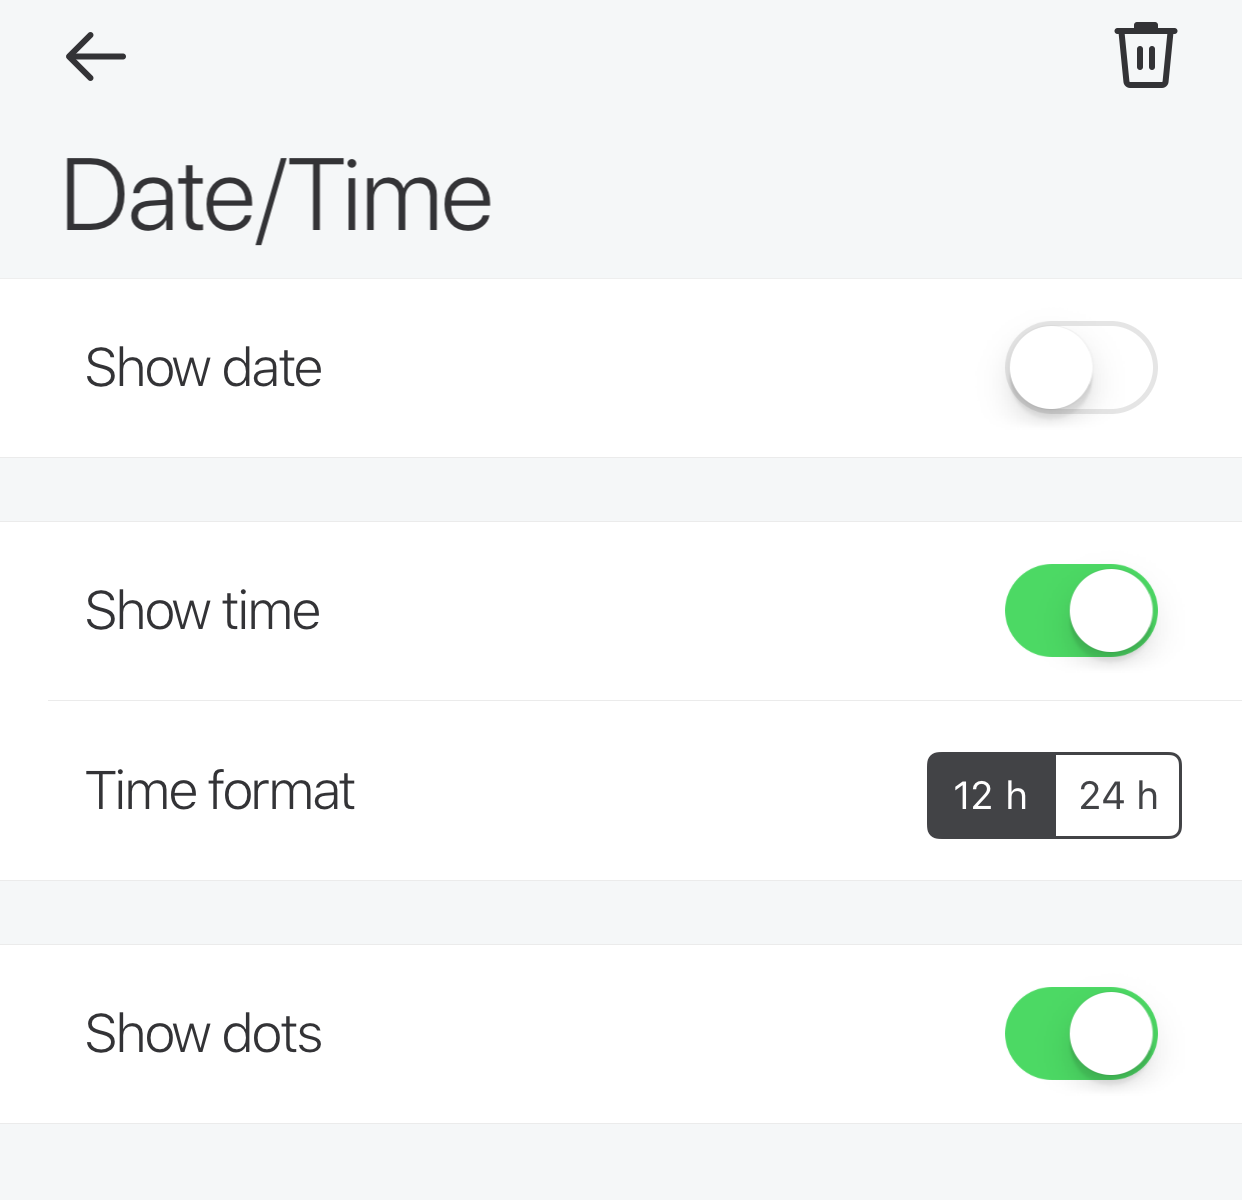 Glance App - Date and Time - Time enabled